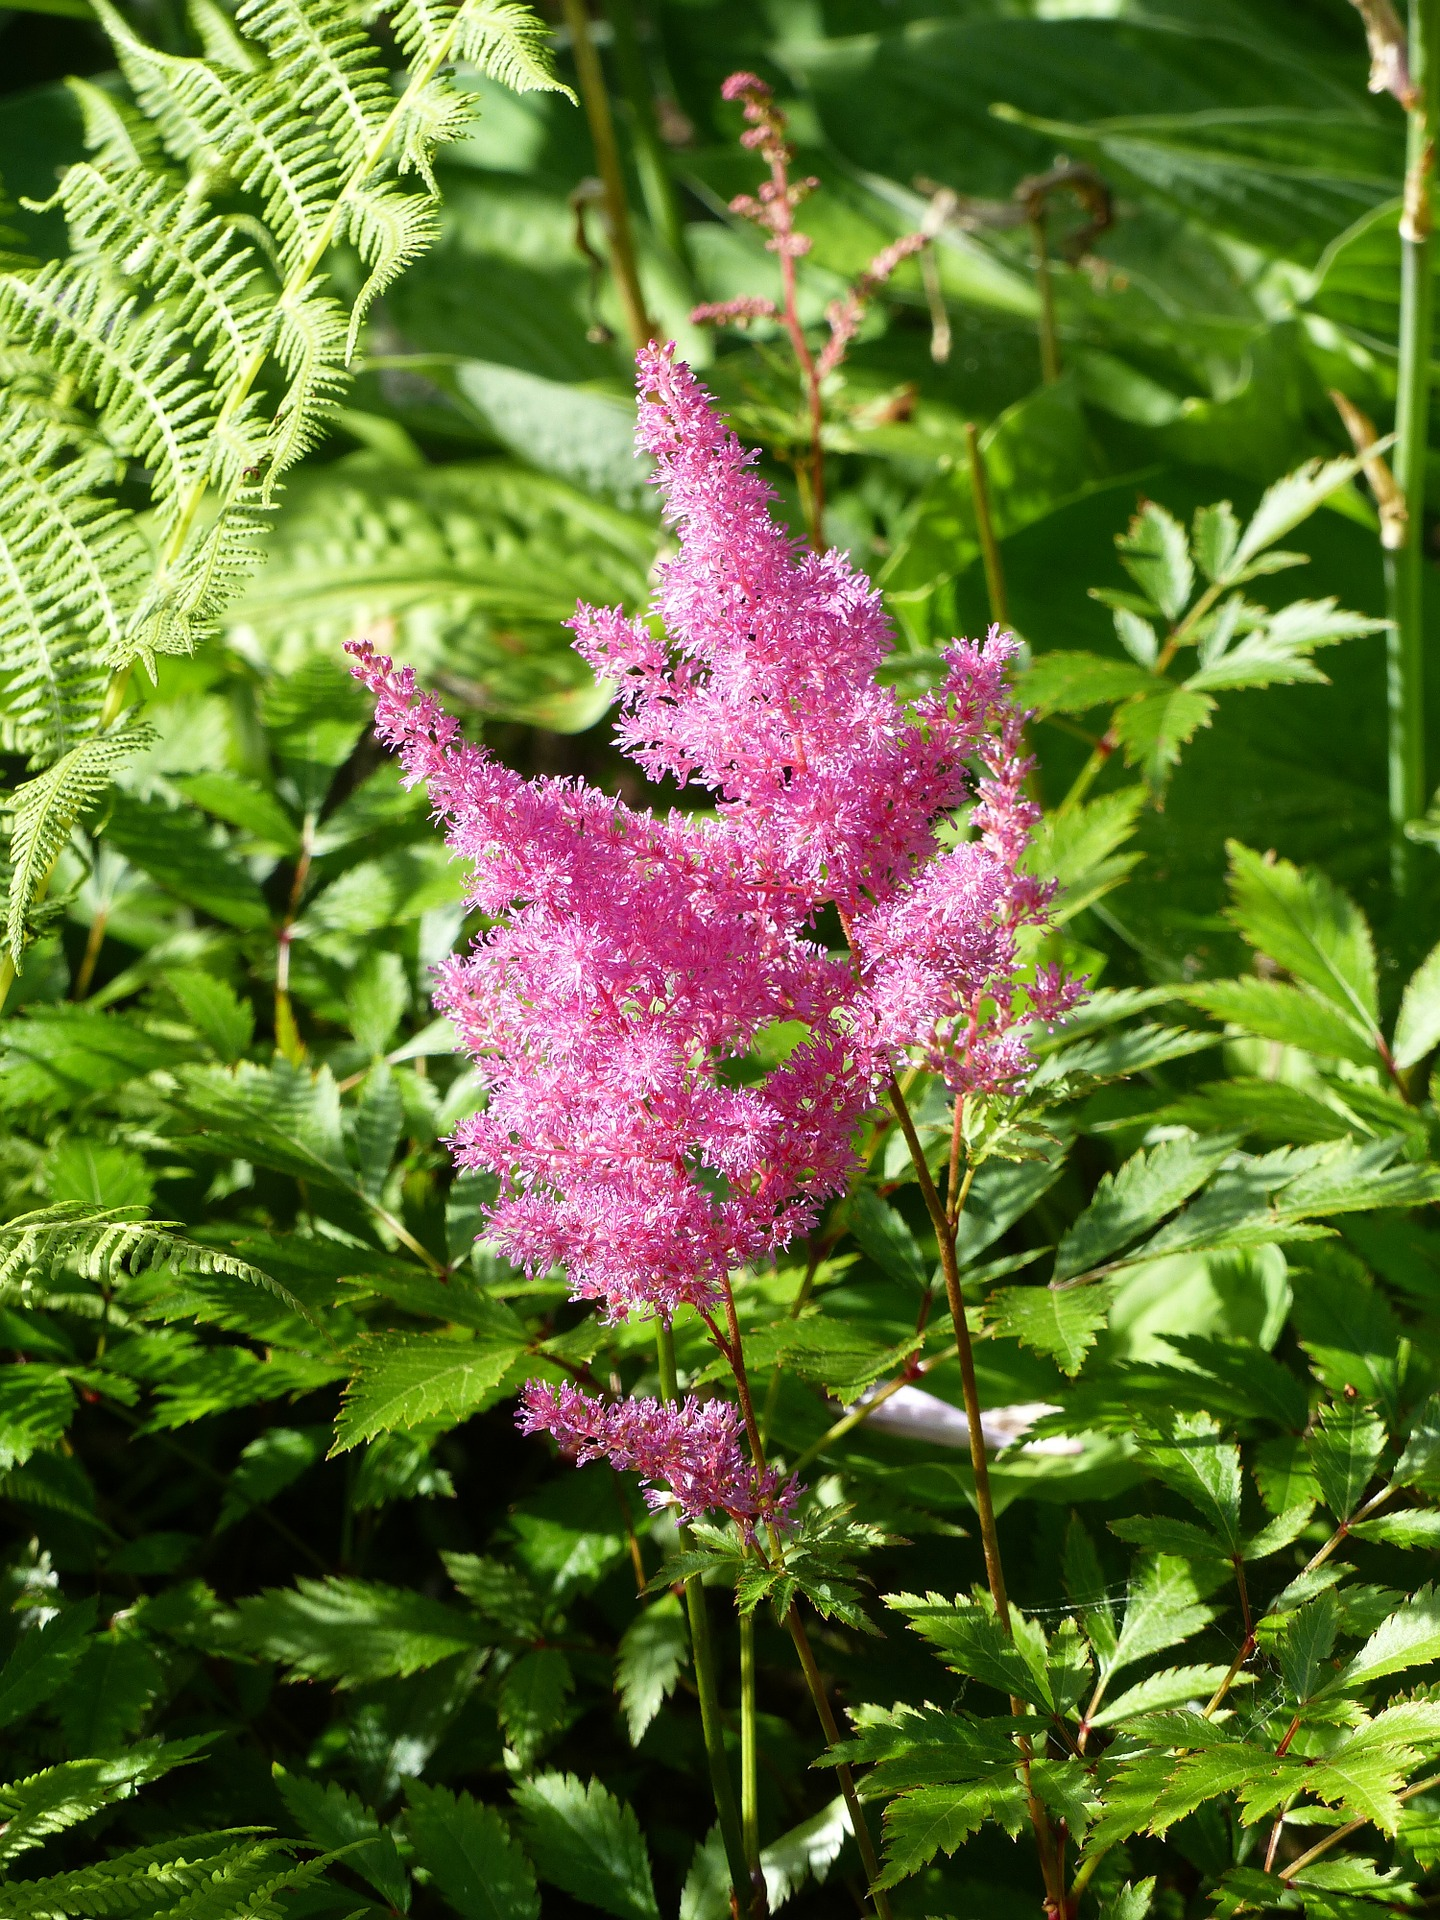 Astilbe how to plant grow and care for astilbe flowers the old astilbe how to plant grow and care for astilbe flowers the old farmers almanac izmirmasajfo